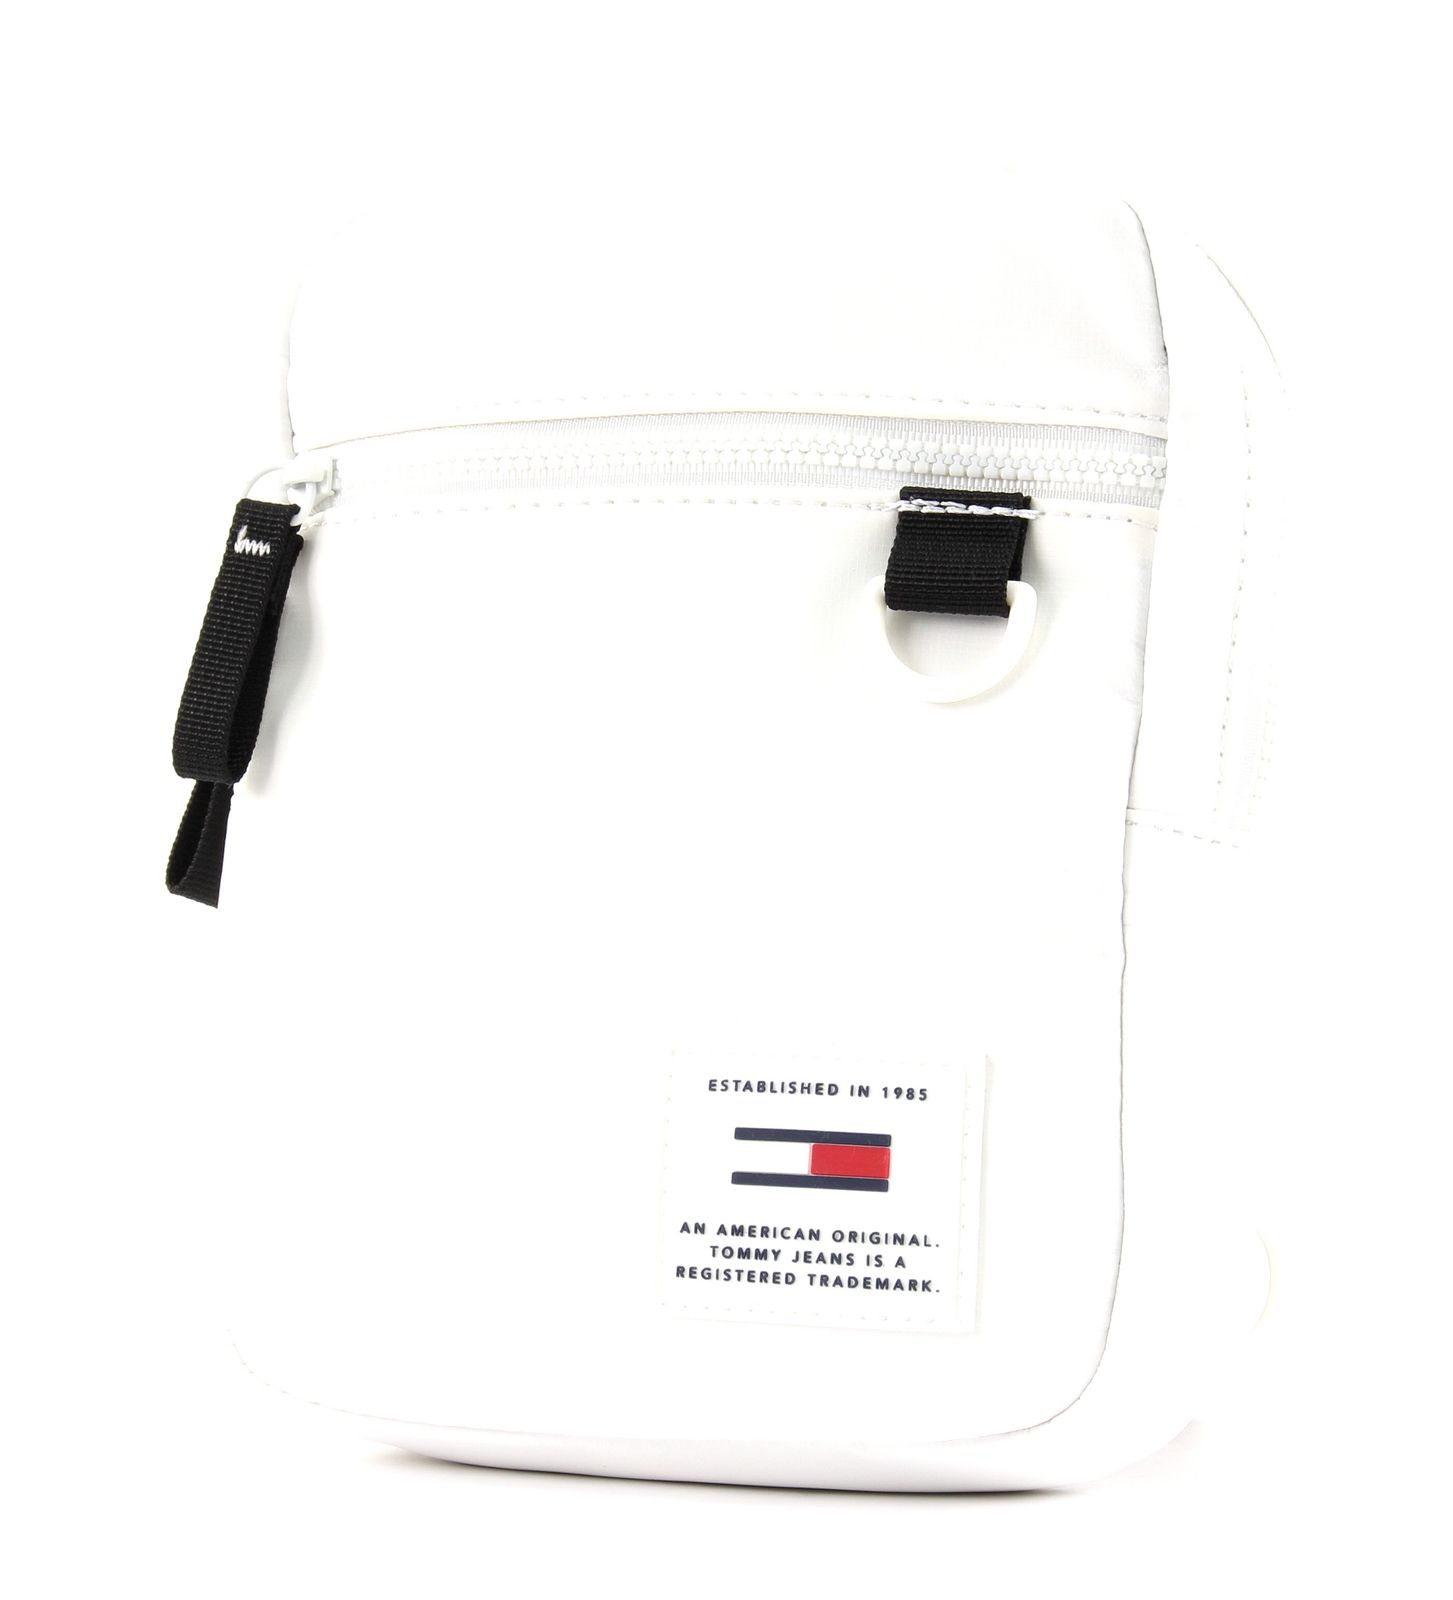 73cde2a6 ... CloseTOMMY HILFIGER TJM Urban Tech Reporter Classic White / 49,32 €*Tap  To CloseOnly possible if you pay by Paypal, Amazon Payments, Credit Card,  ...